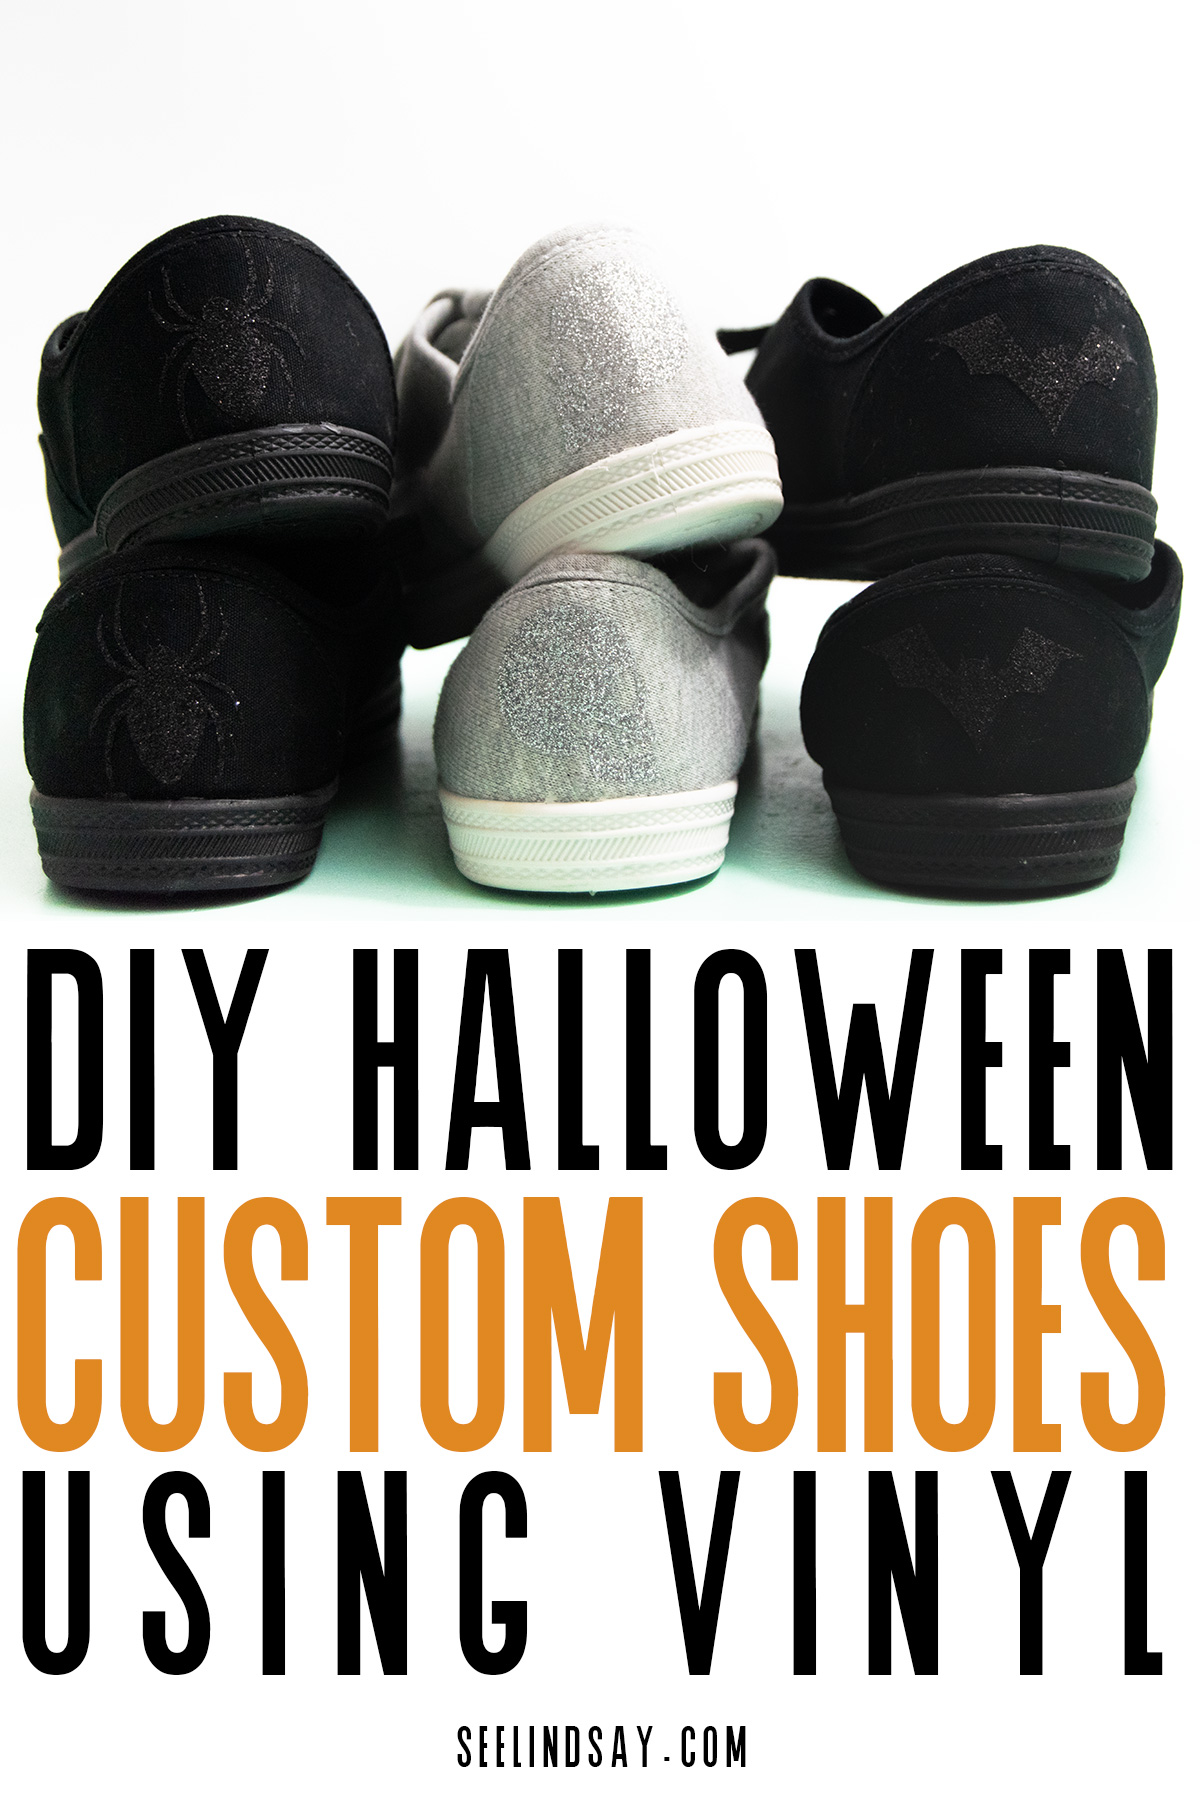 black, grey and black shoes with halloween decals